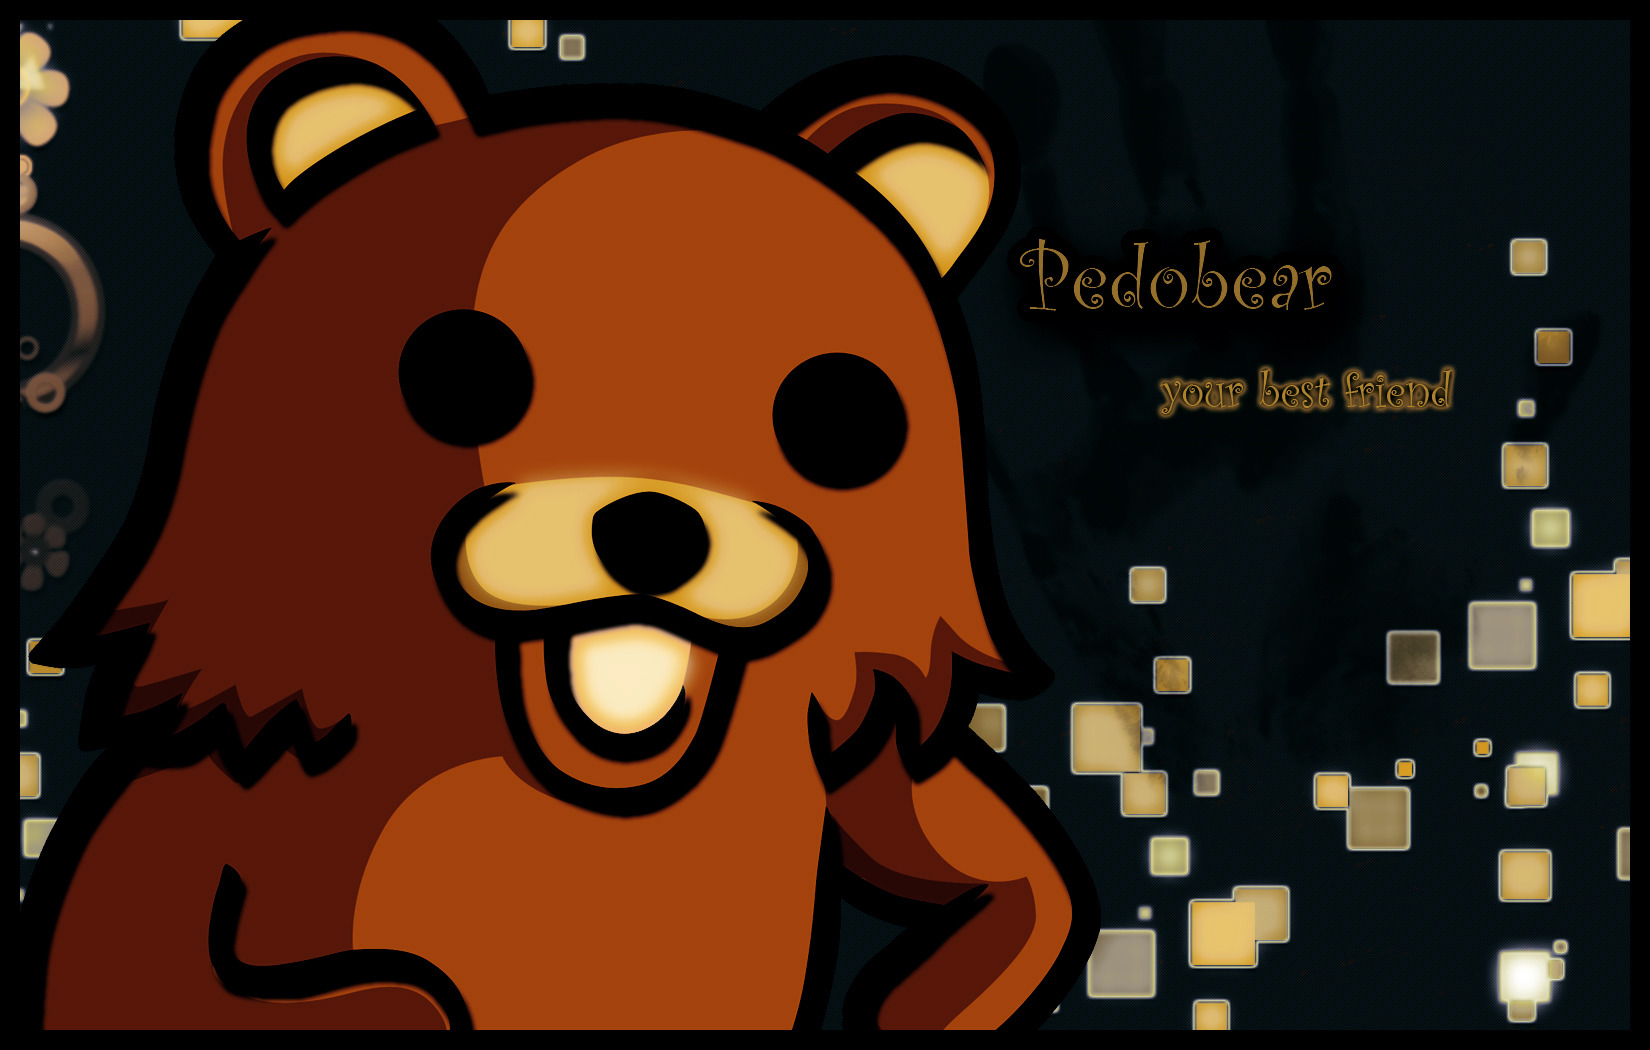 Pedobear Your best friend HD Wallpaper